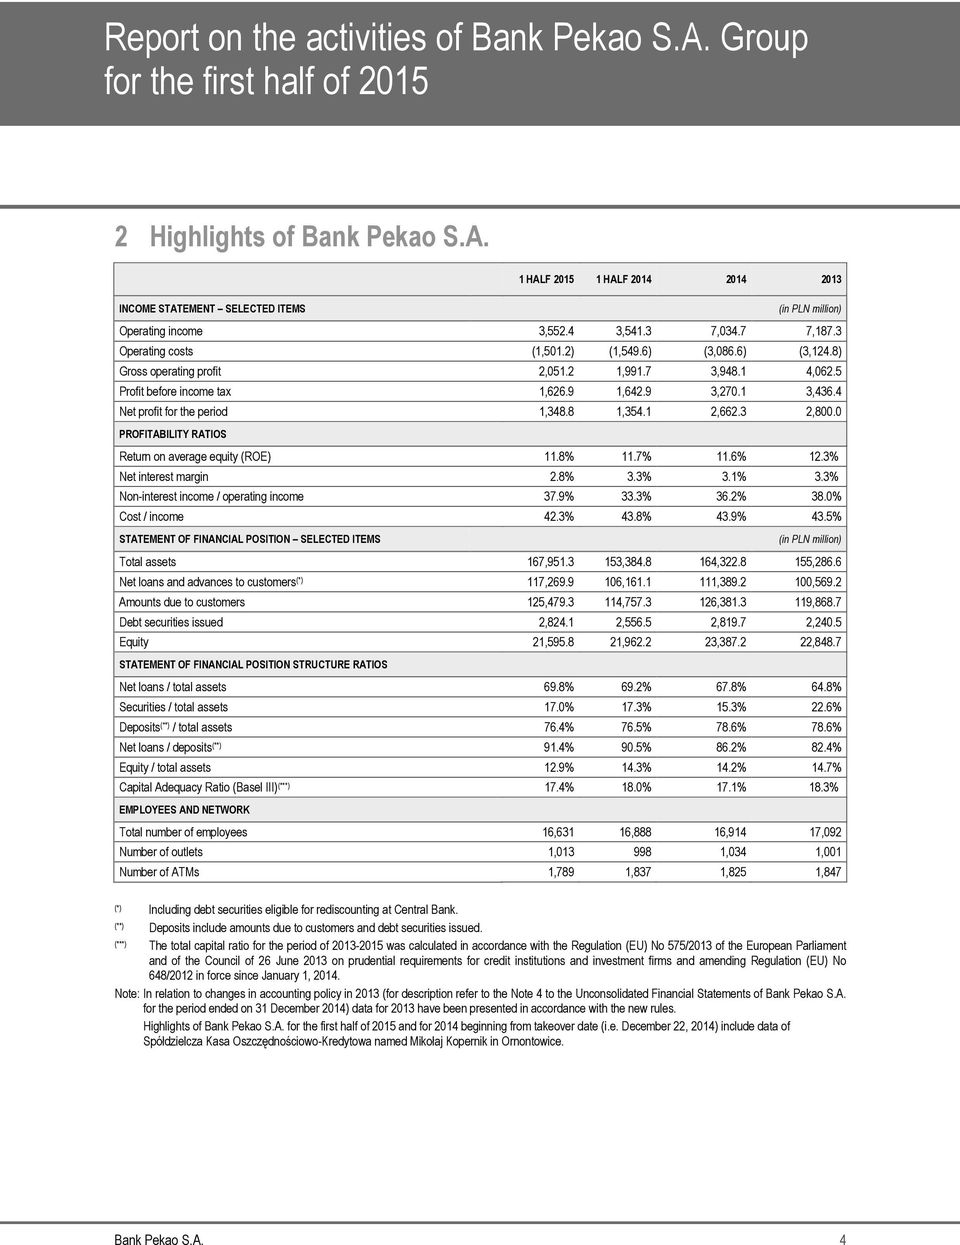 0 PROFITABILITY RATIOS Return on average equity (ROE) 11.8% 11.7% 11.6% 12.3% Net interest margin 2.8% 3.3% 3.1% 3.3% Non-interest income / operating income 37.9% 33.3% 36.2% 38.0% Cost / income 42.